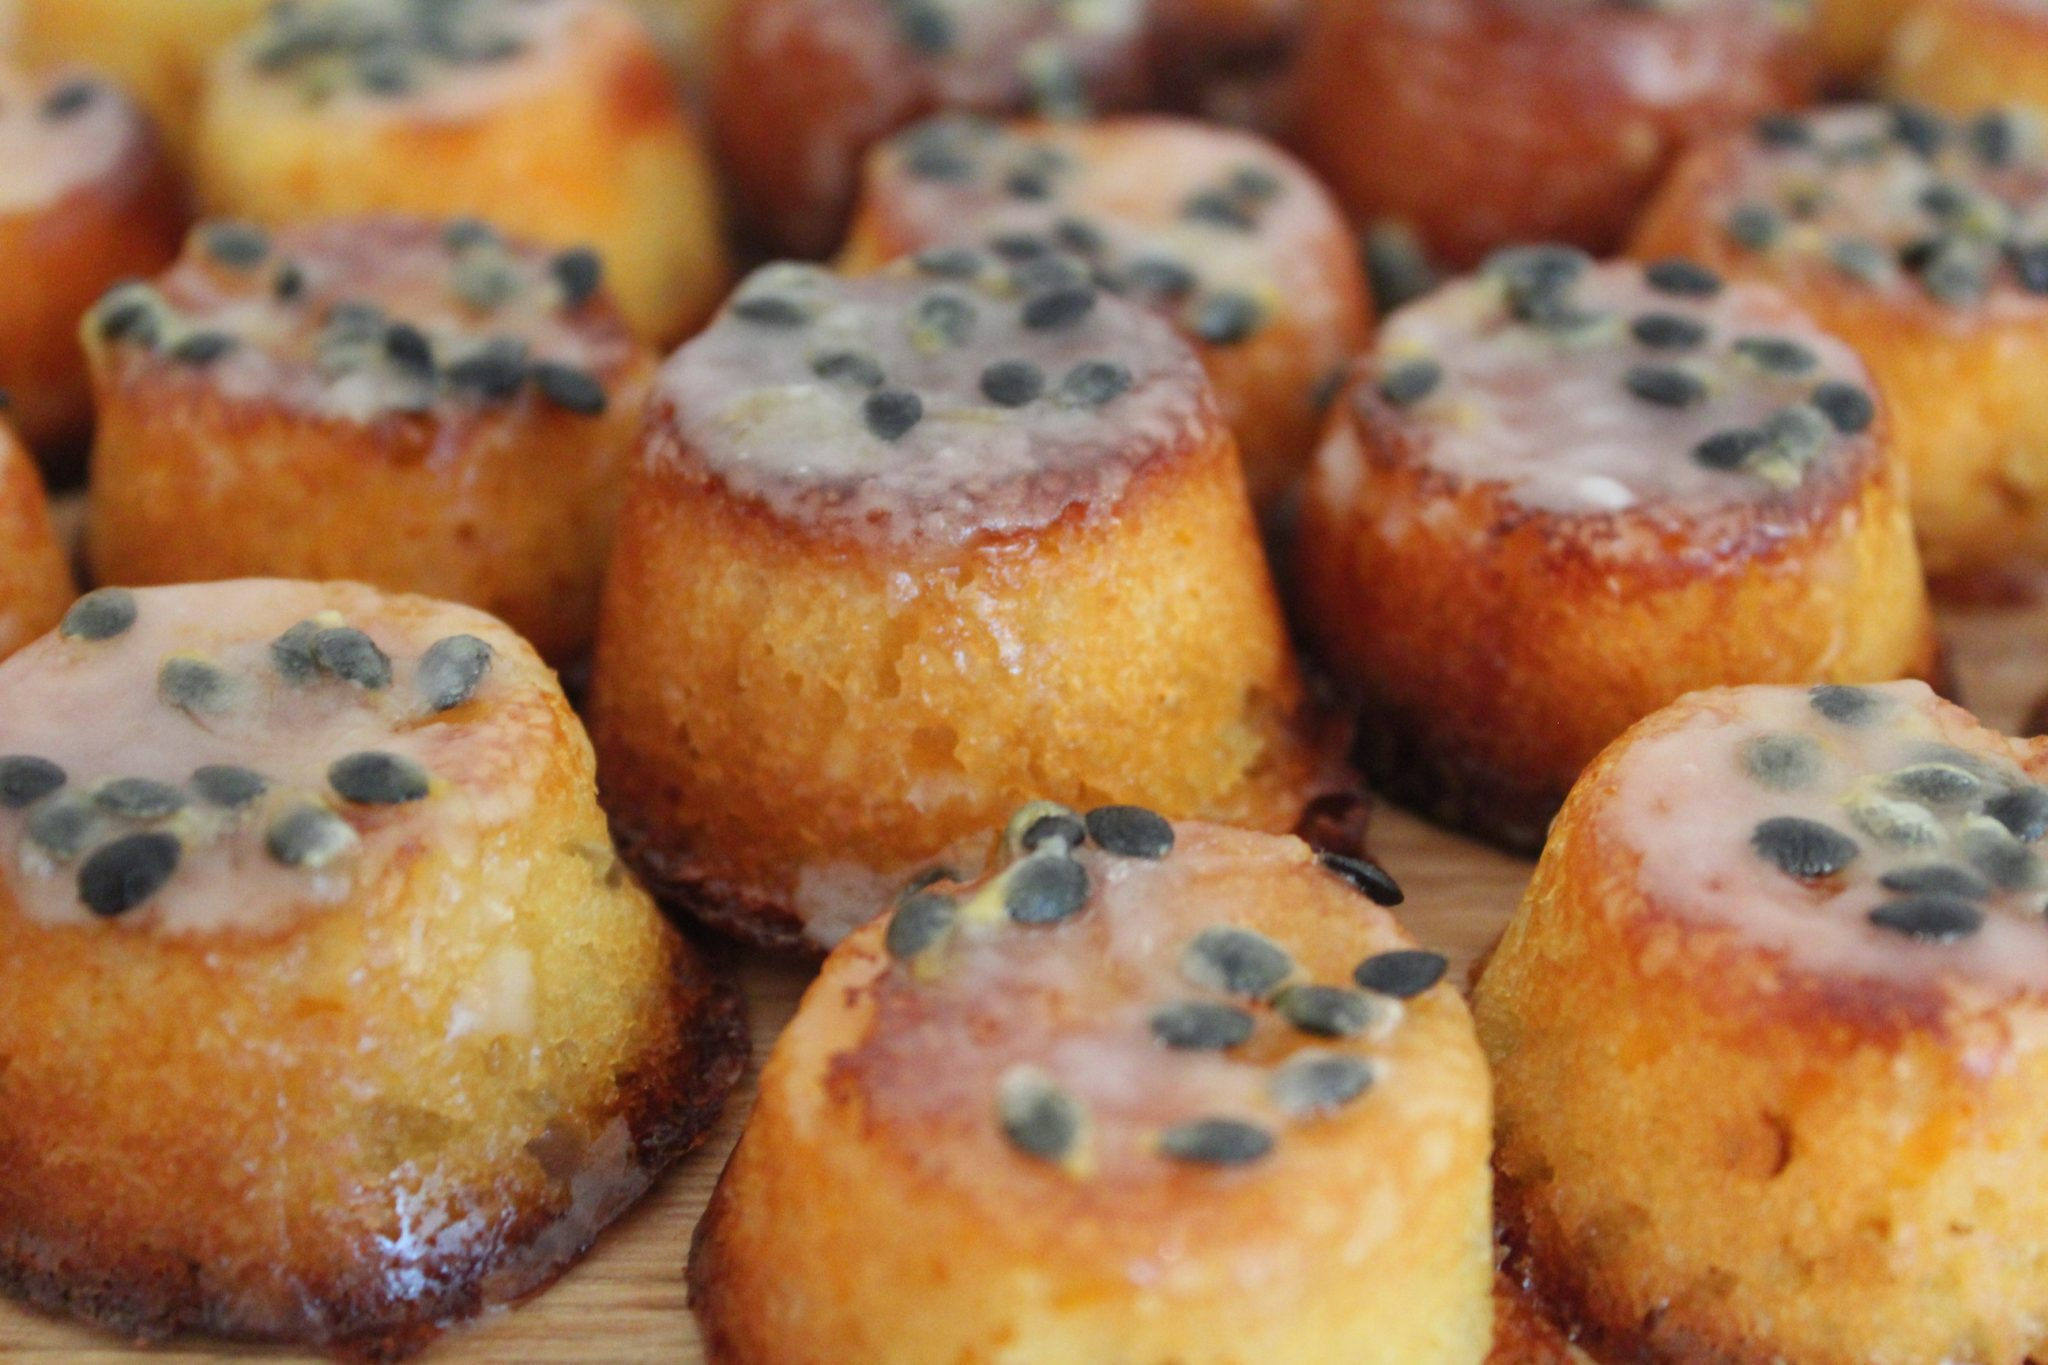 Gluten dairy free passionfruit butternut squash cakes